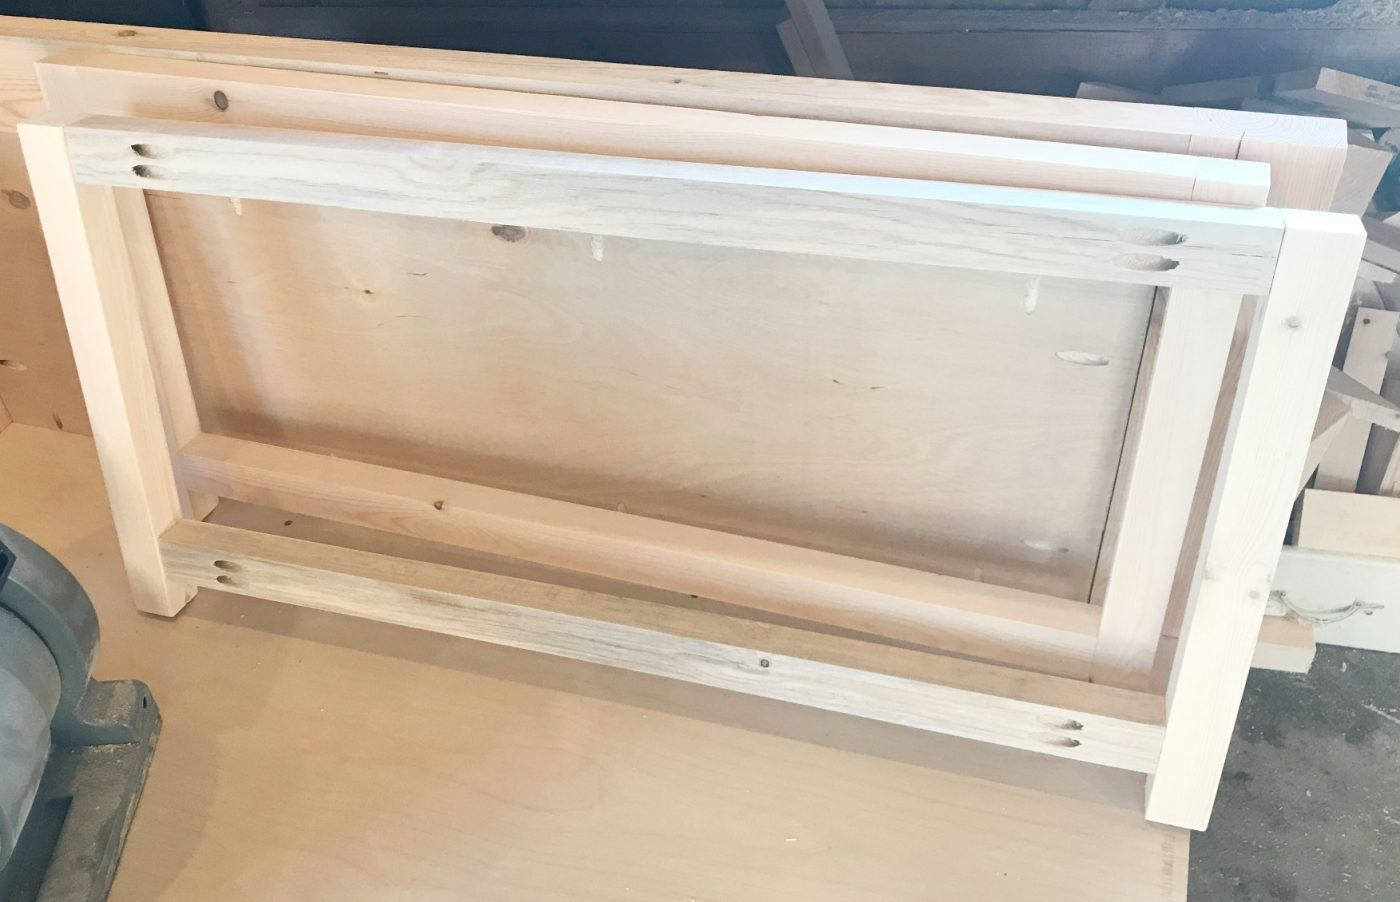 DIY Storage Chest Frame & How to Build a Simple DIY Storage Chest